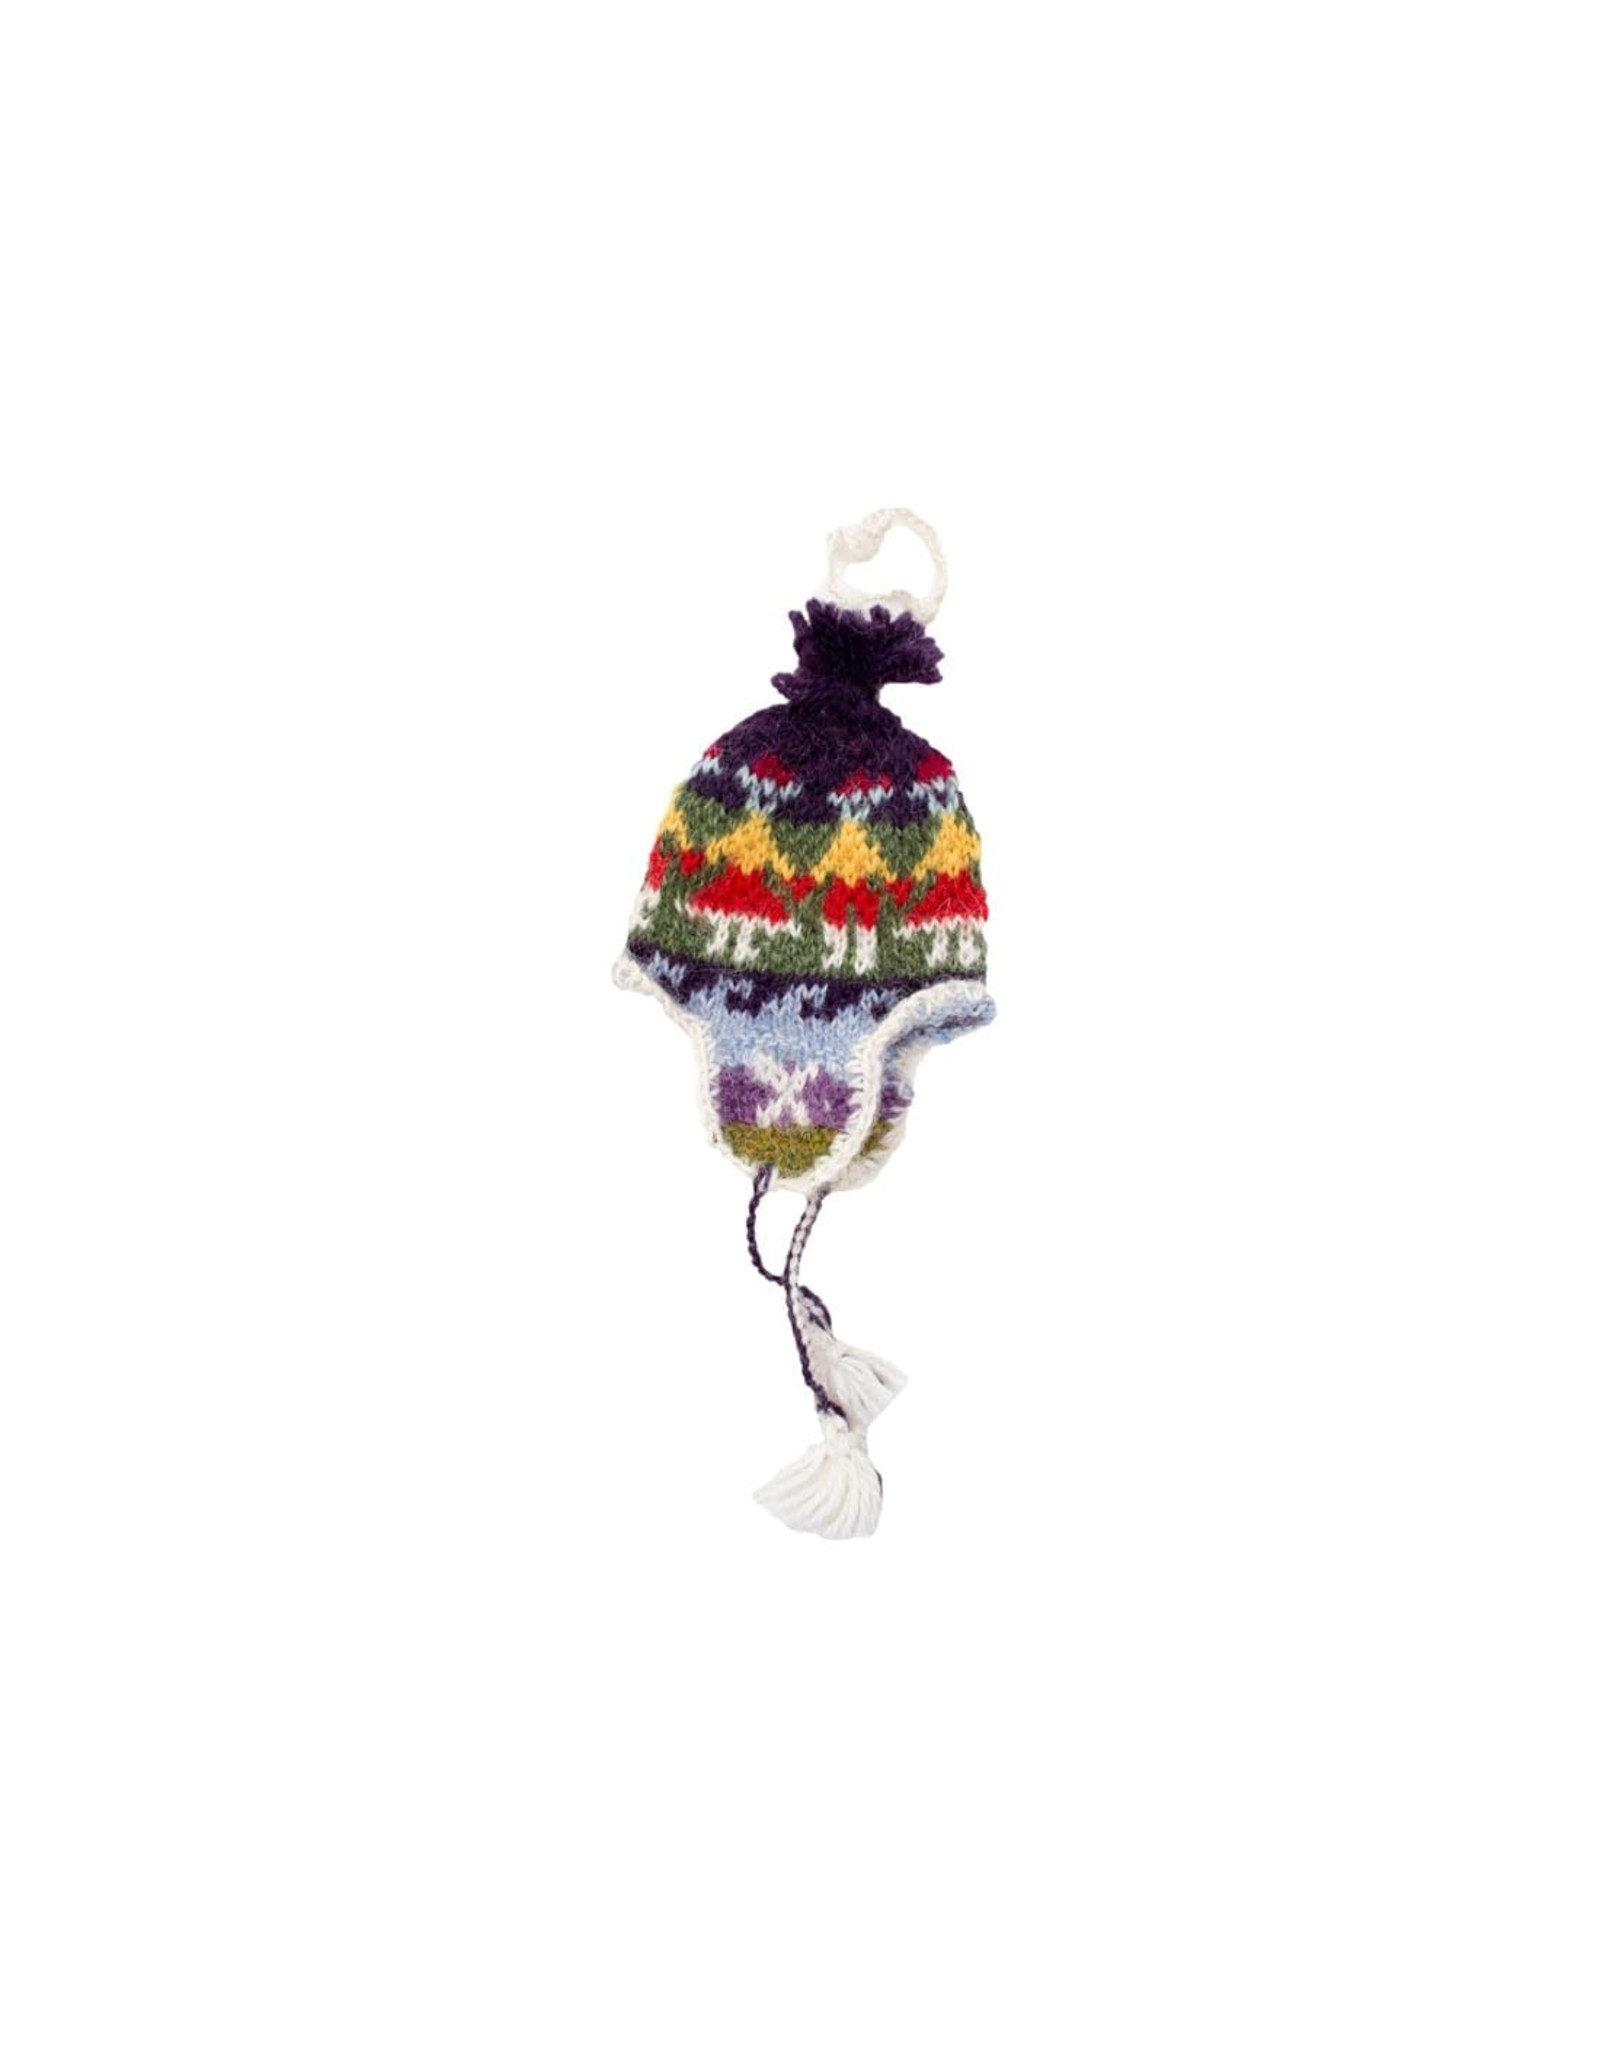 Lucuma Knit Chullo Hat Ornament, assorted